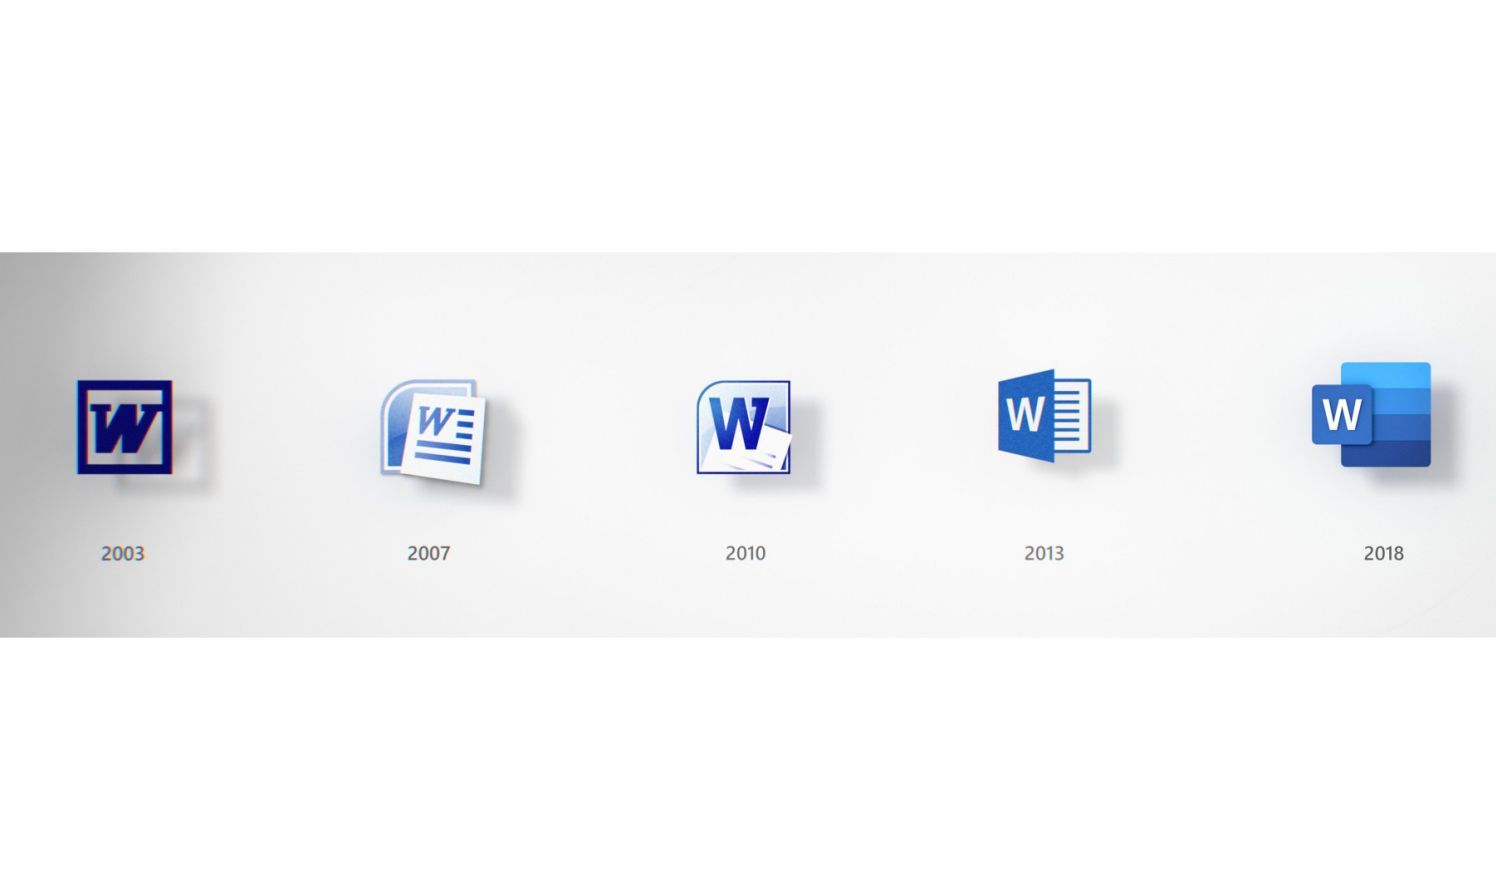 For the first time since 2013, Microsoft Office icons have